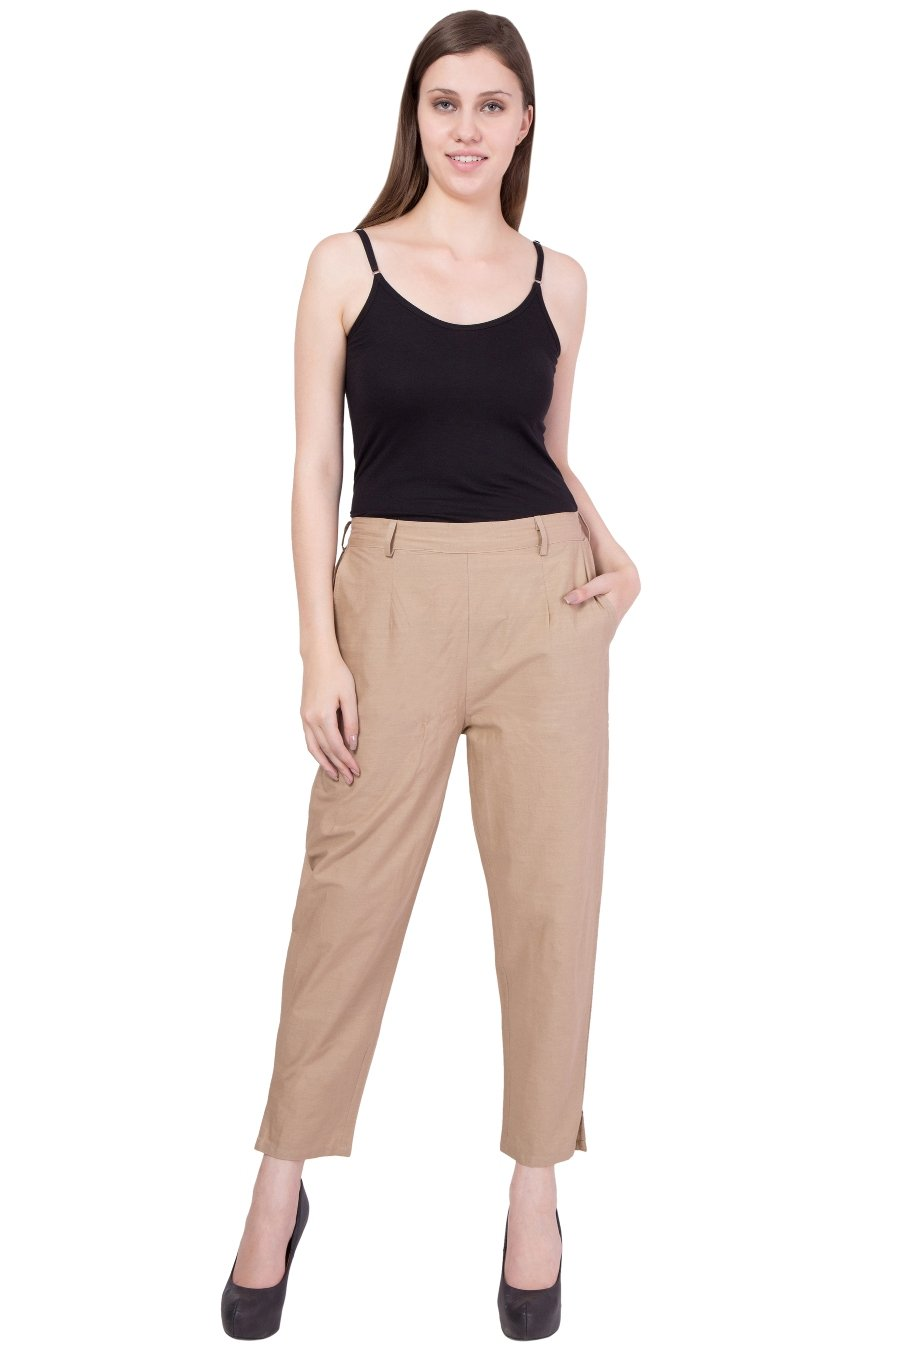 Cotton Pant  in Beige Color  WMB000016